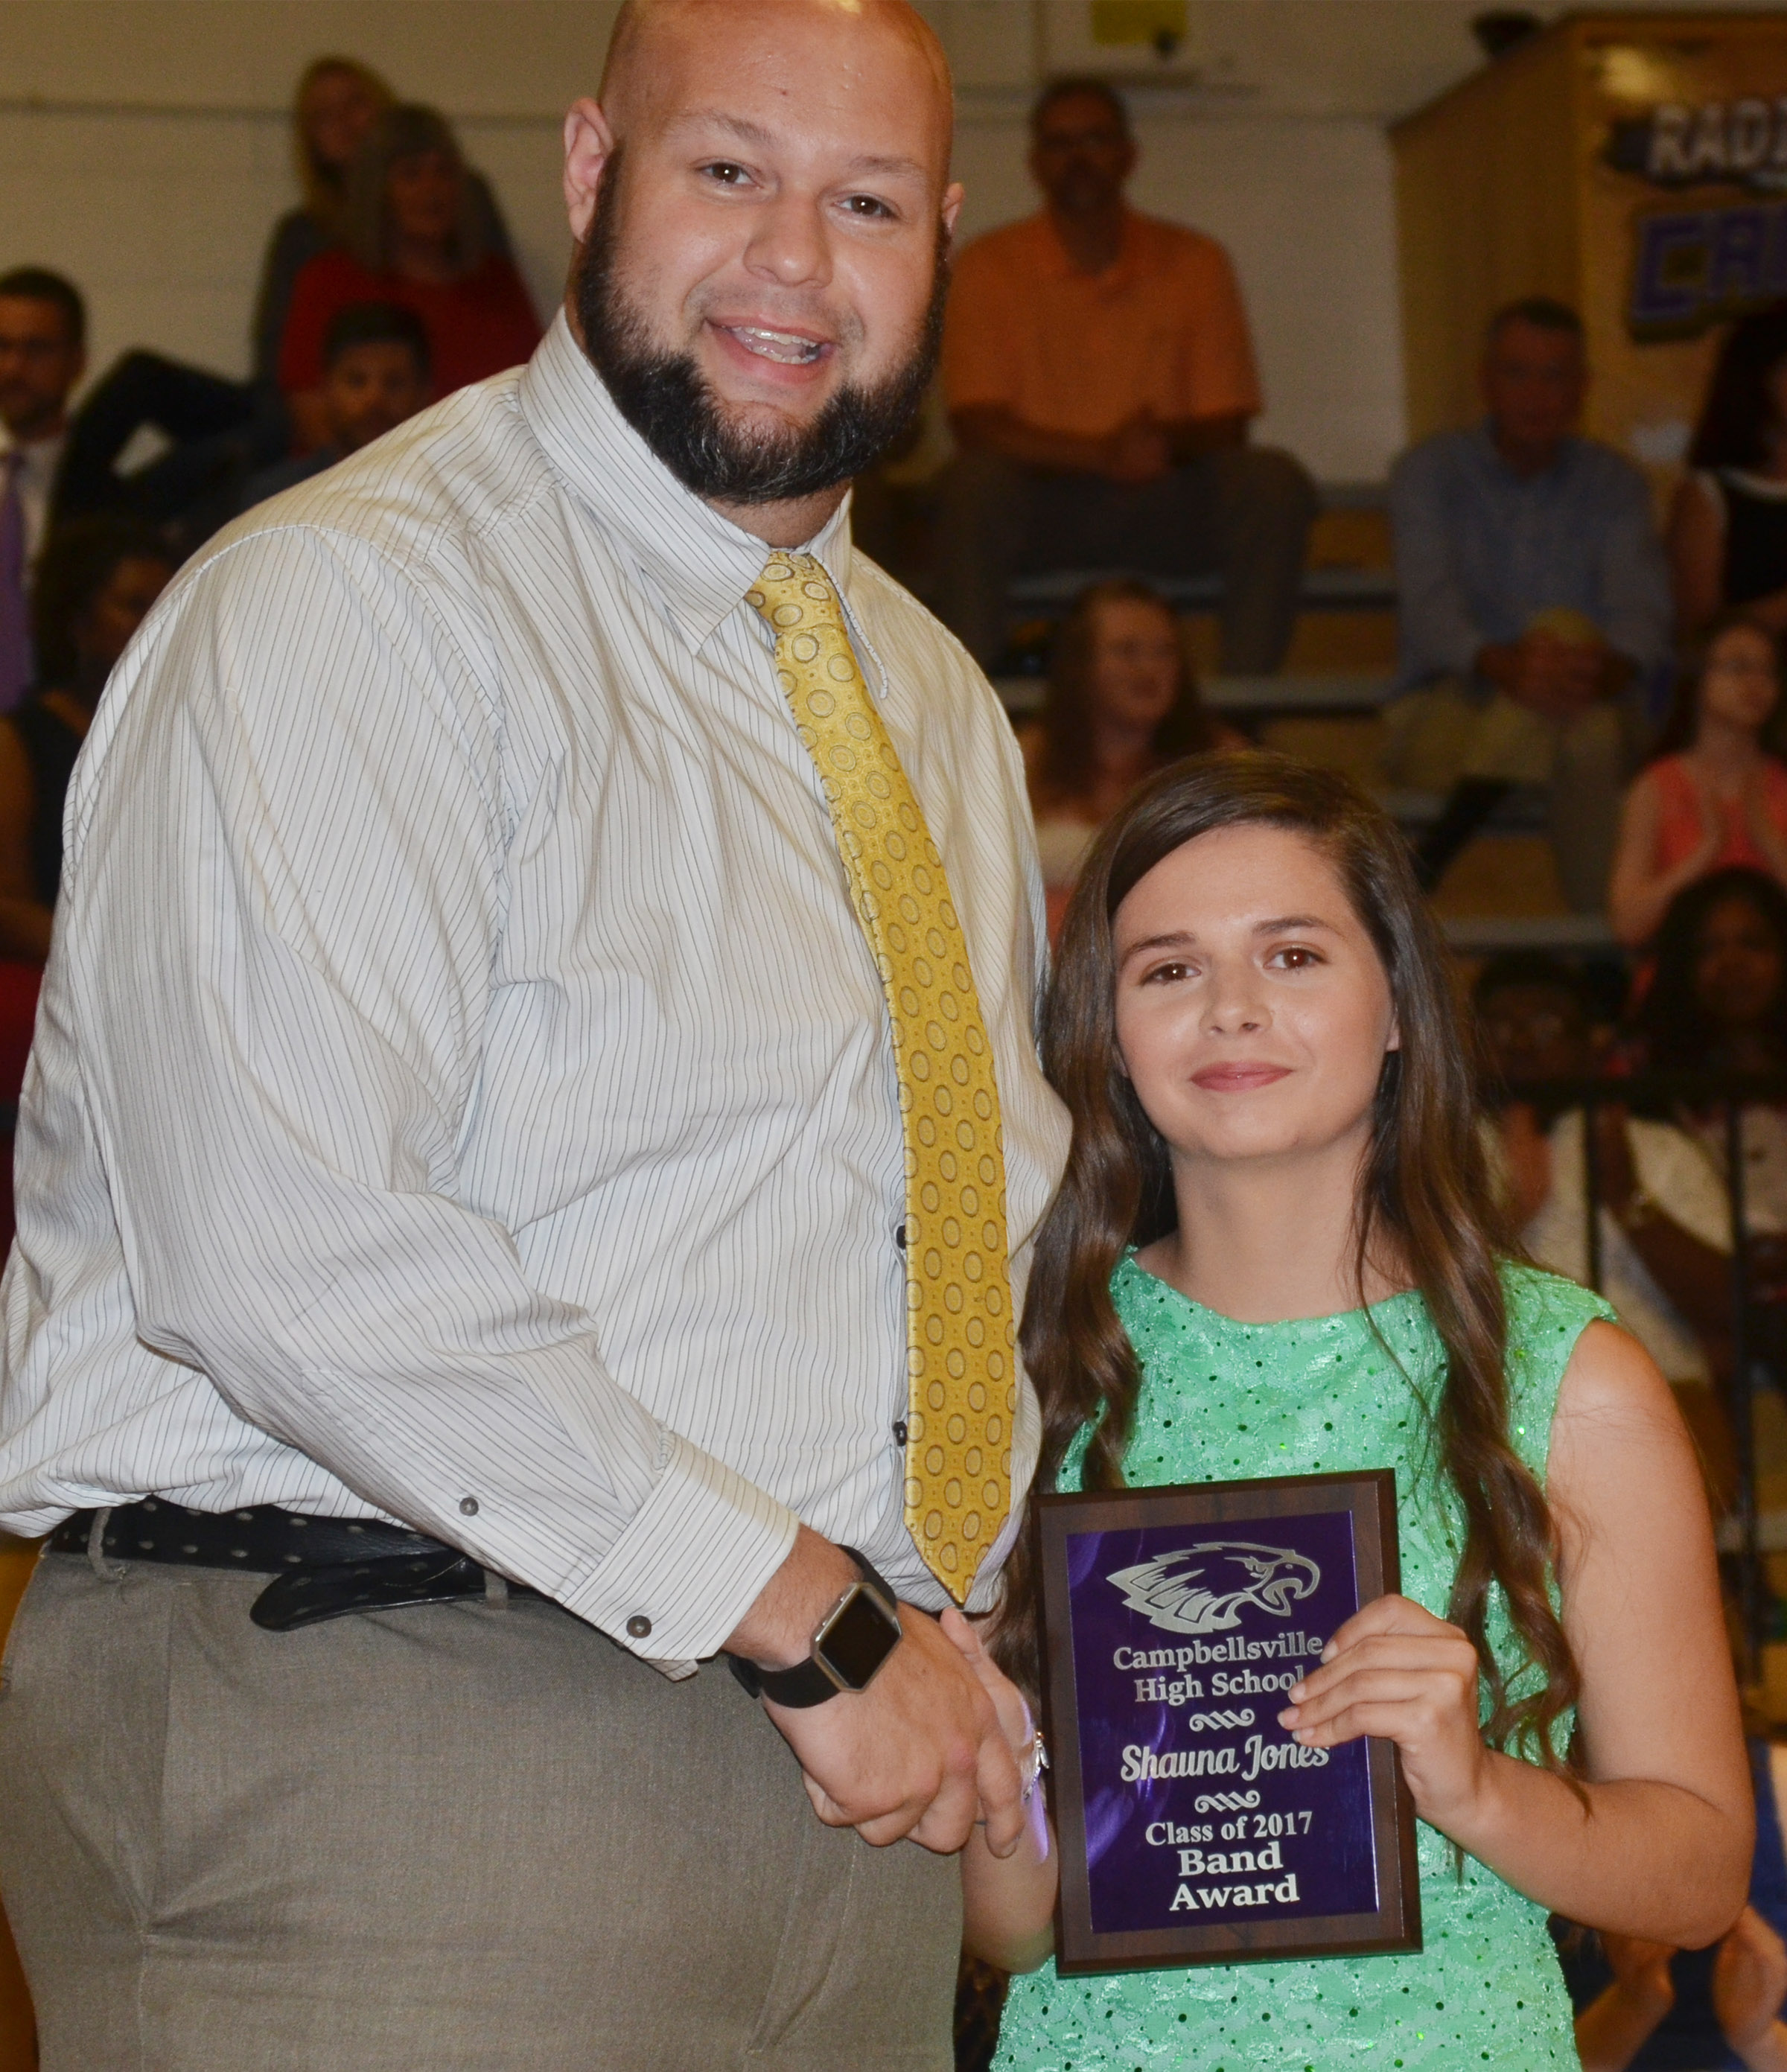 Shauna Jones receives the band award. She is pictured with band director Zach Shelton.